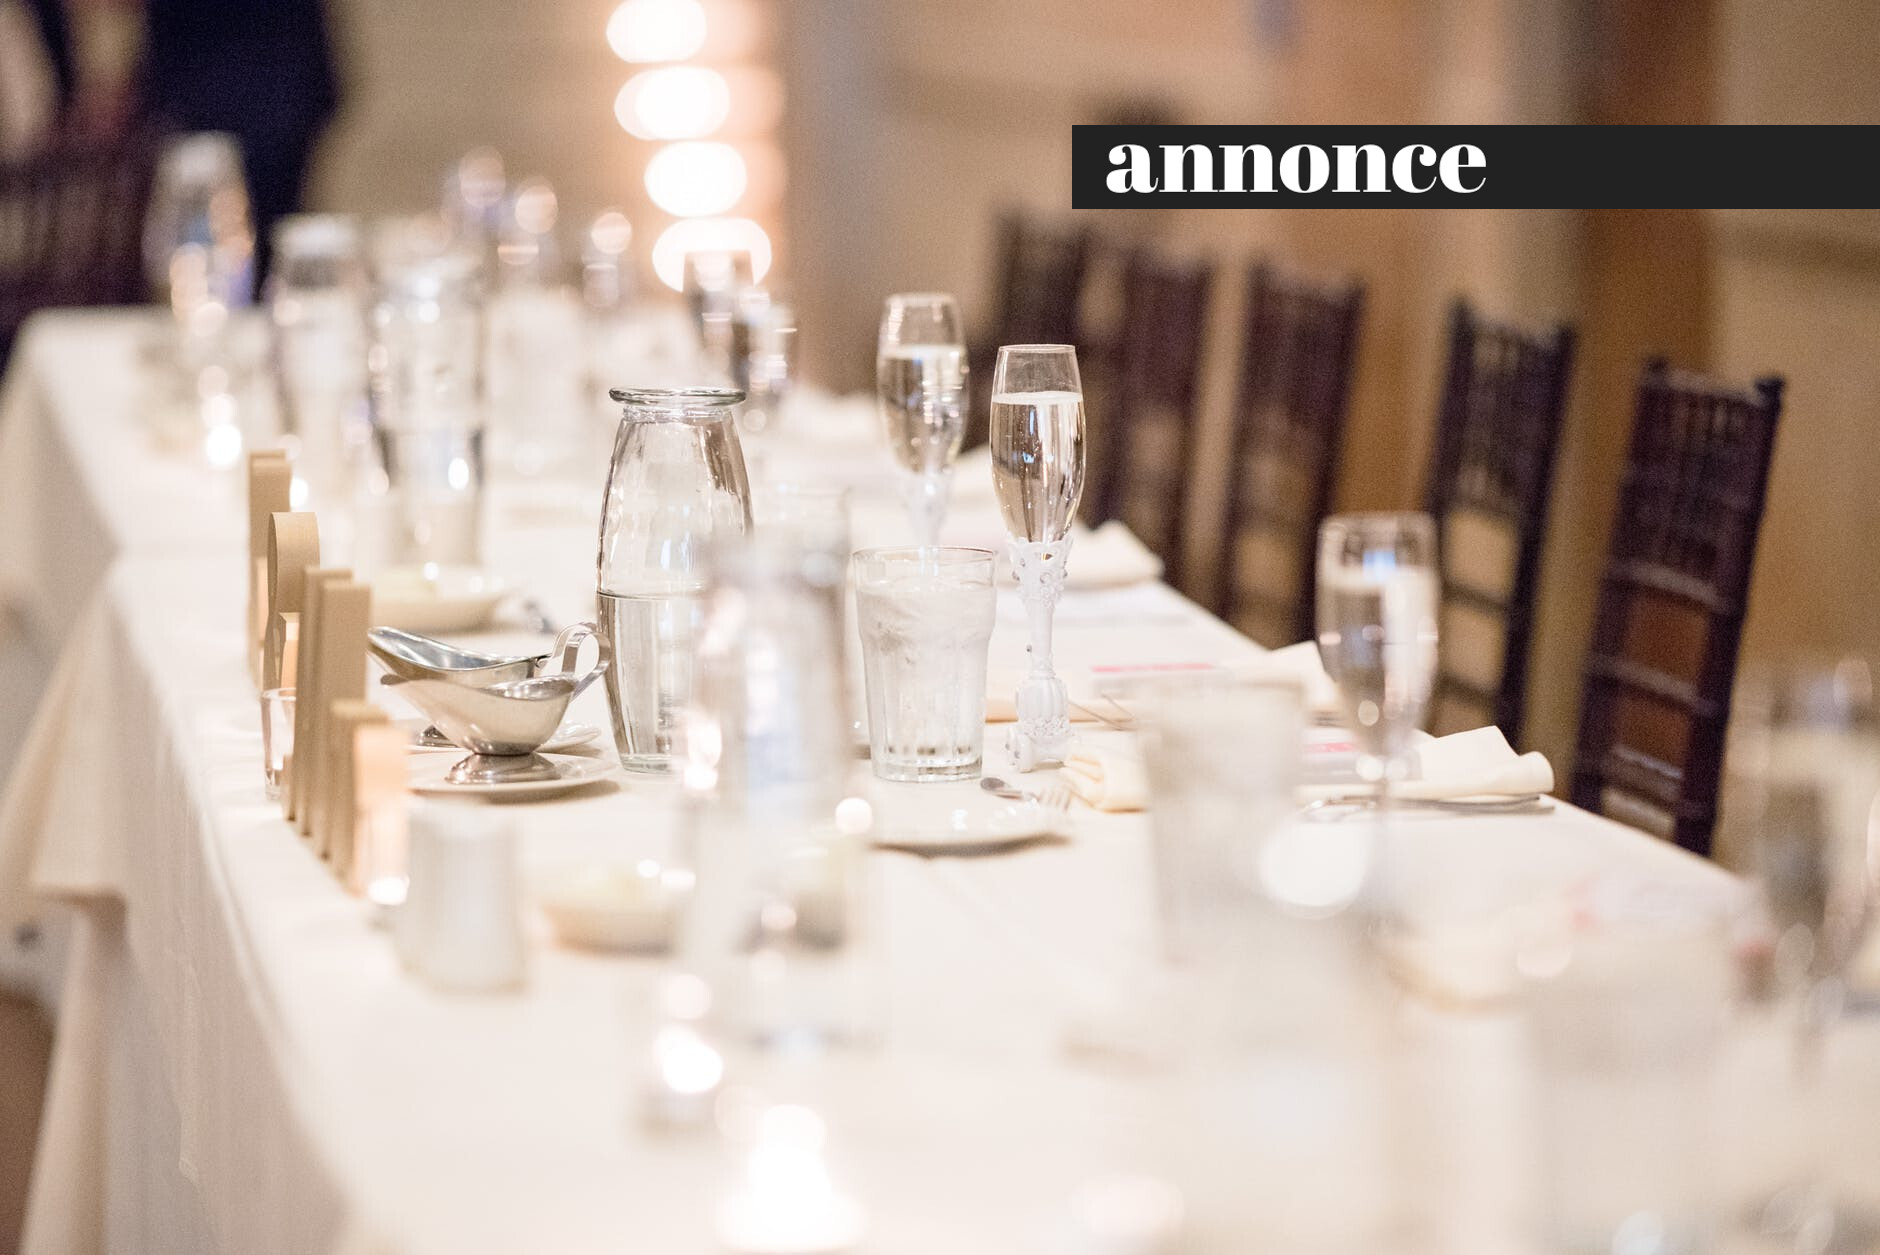 champagne flutes filled with liquid on table